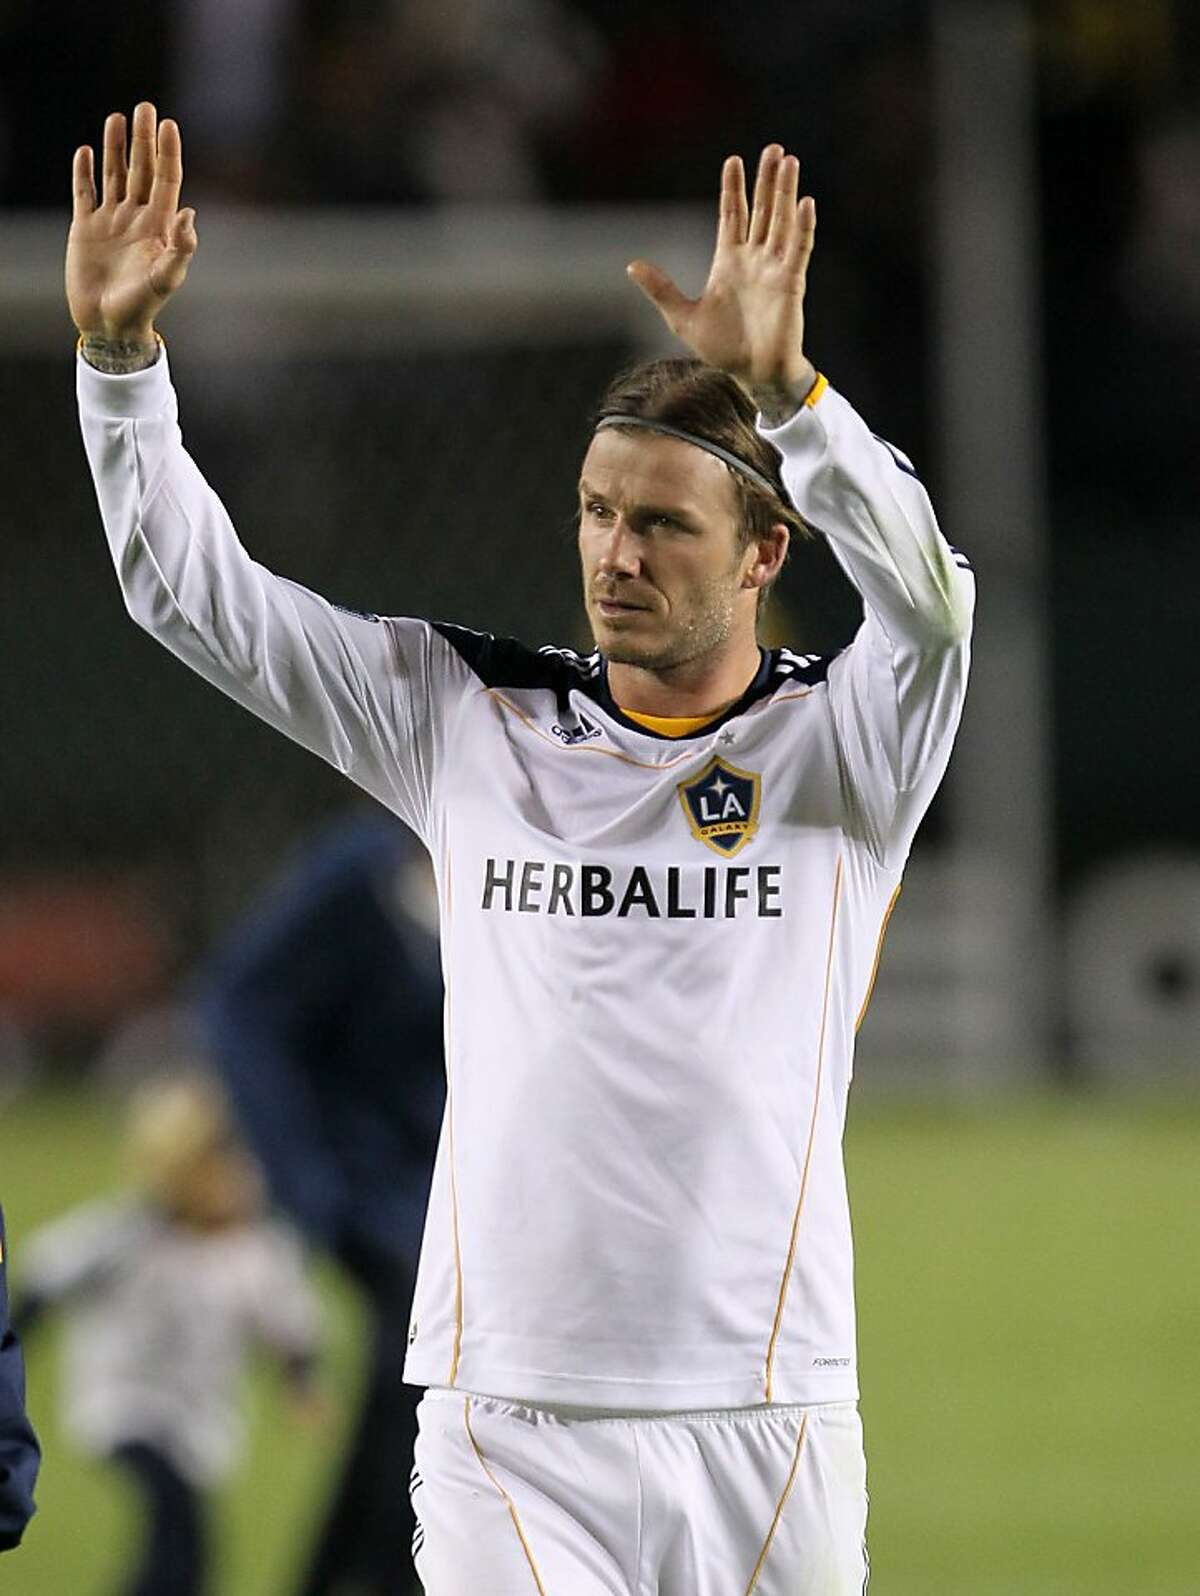 CARSON, CA - NOVEMBER 03: David Beckham #23 of the Los Angeles Galaxy waves to the crowd as he leaves the field after the game against the New York Red Bulls in their Western Conference Semifinal at The Home Depot Center on September 9, 2011 in Carson, California. The Galaxy won 2-1 to advance to the Conference Finals. (Photo by Stephen Dunn/Getty Images)